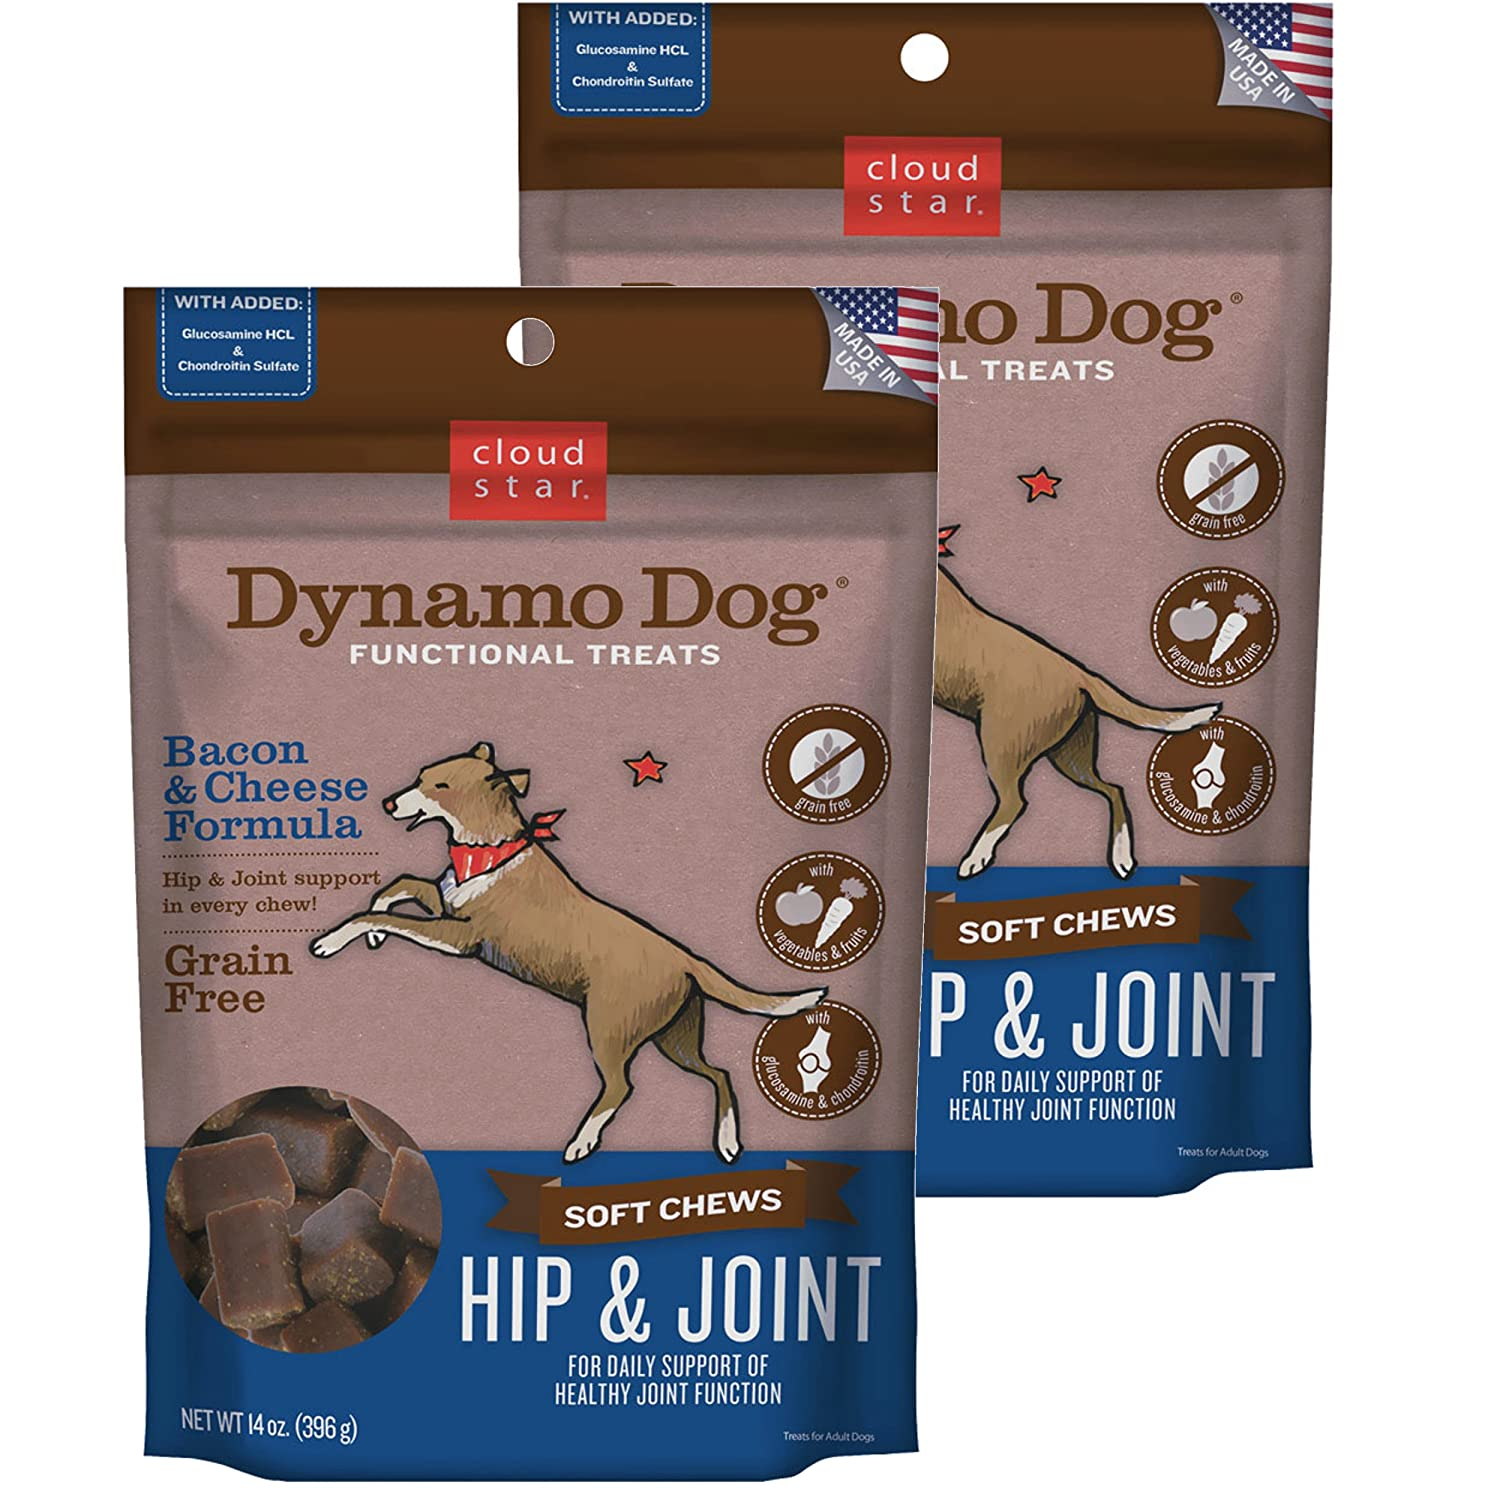 Cloud Star Dynamo Dog Functional Treats Products